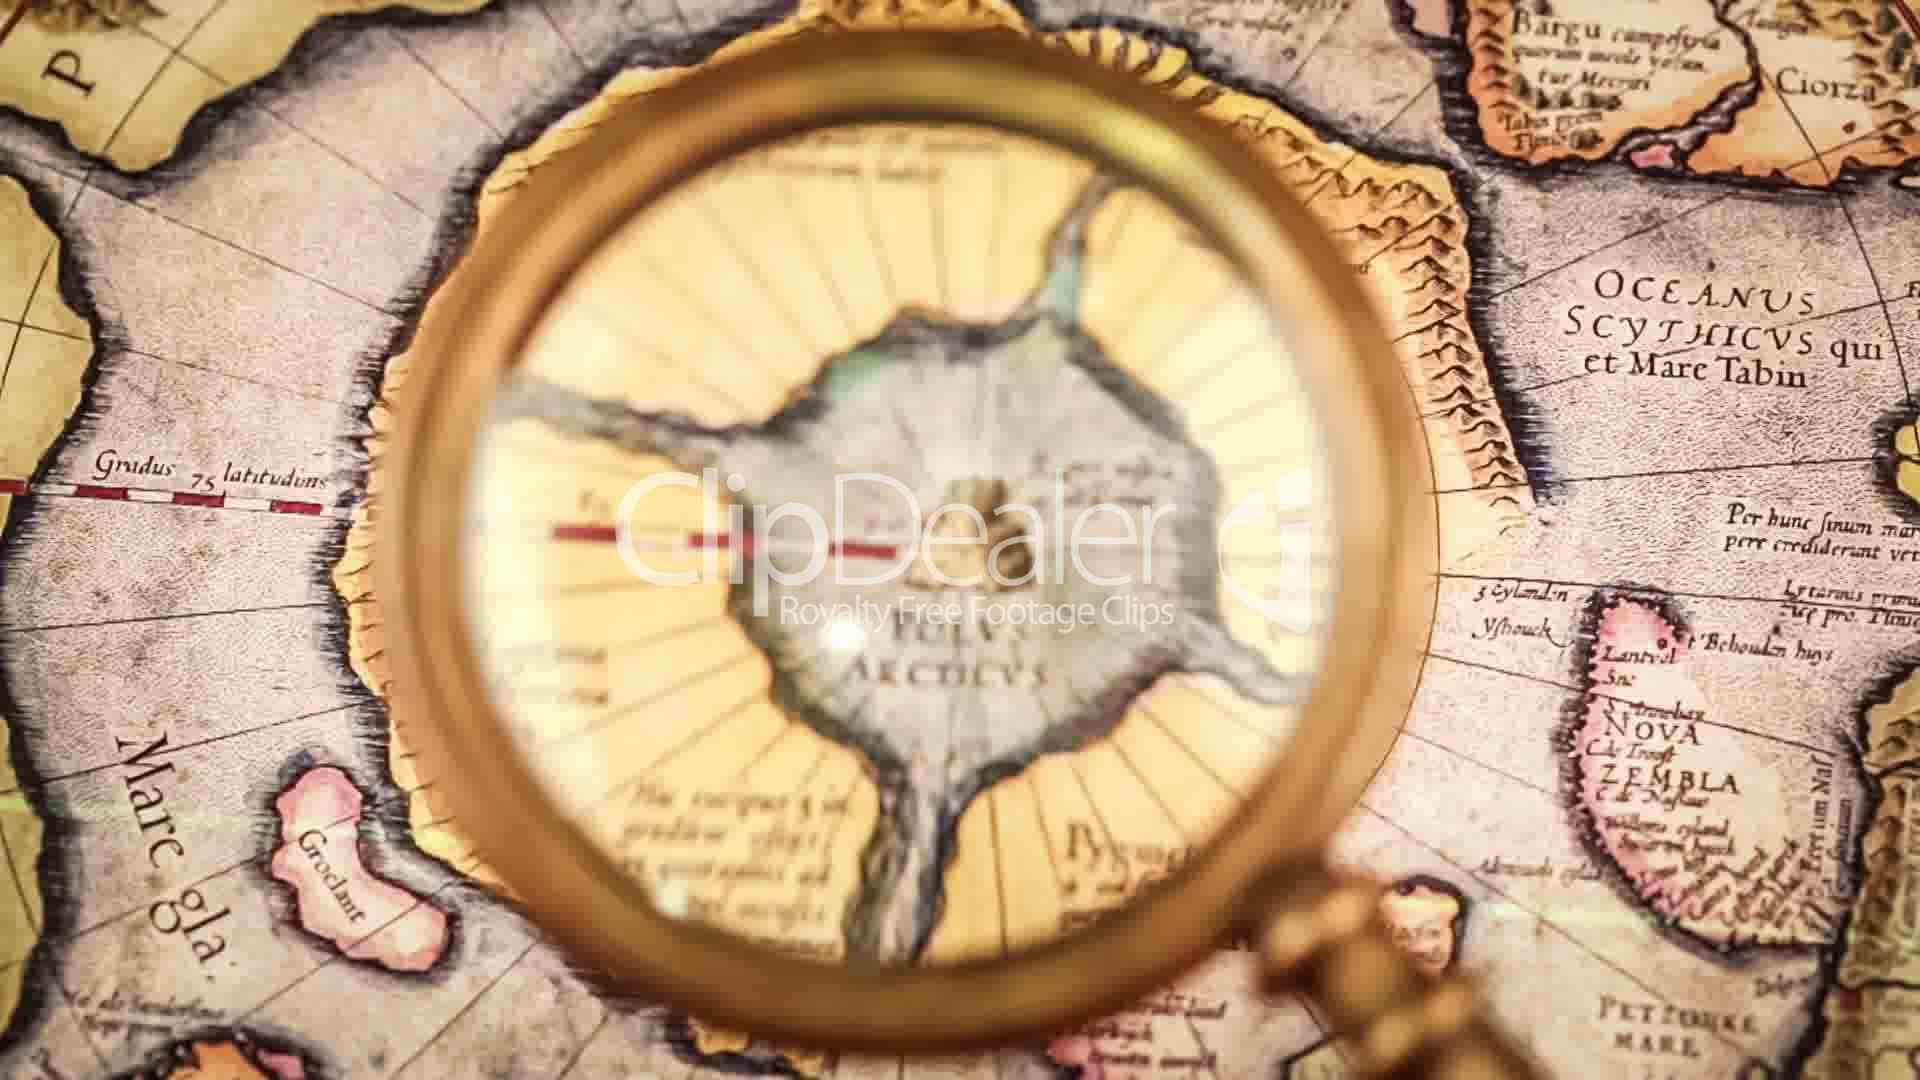 Deko 24 Vintage Magnifying Glass Lies On The Ancient Map Of The